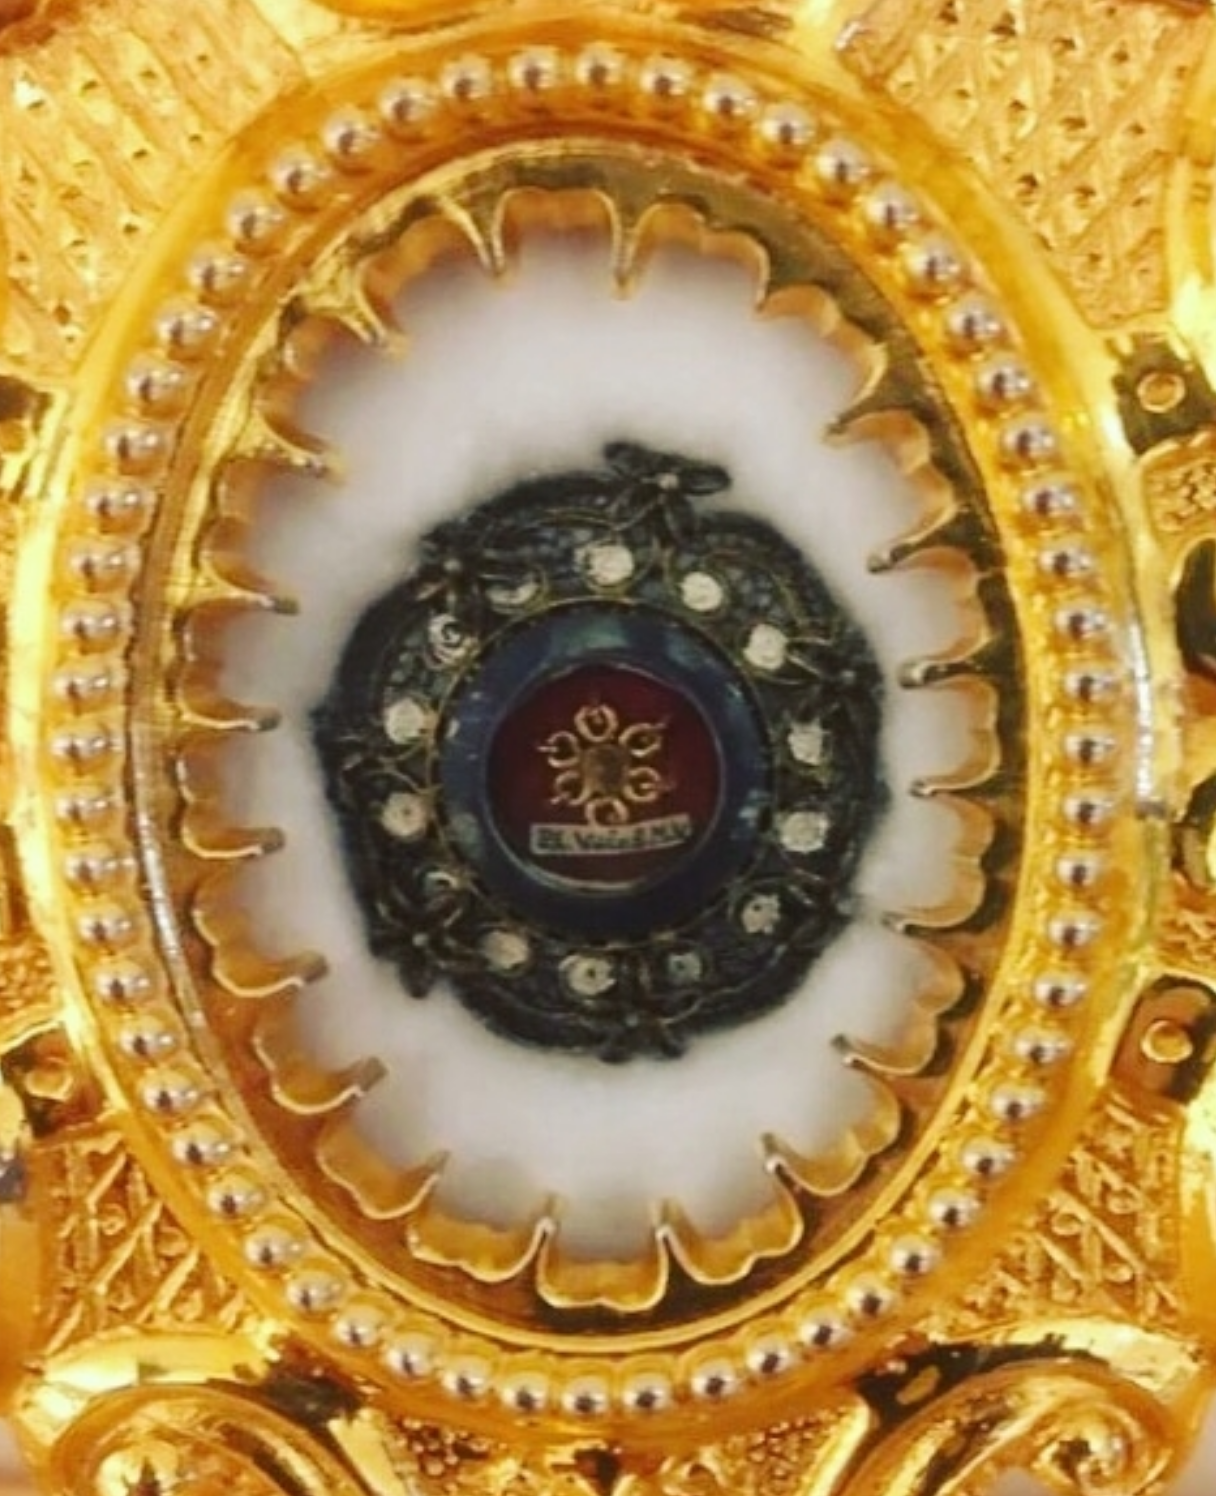 Relic of the Veil of the Blessed Mother (Photo: A. VanVickle)